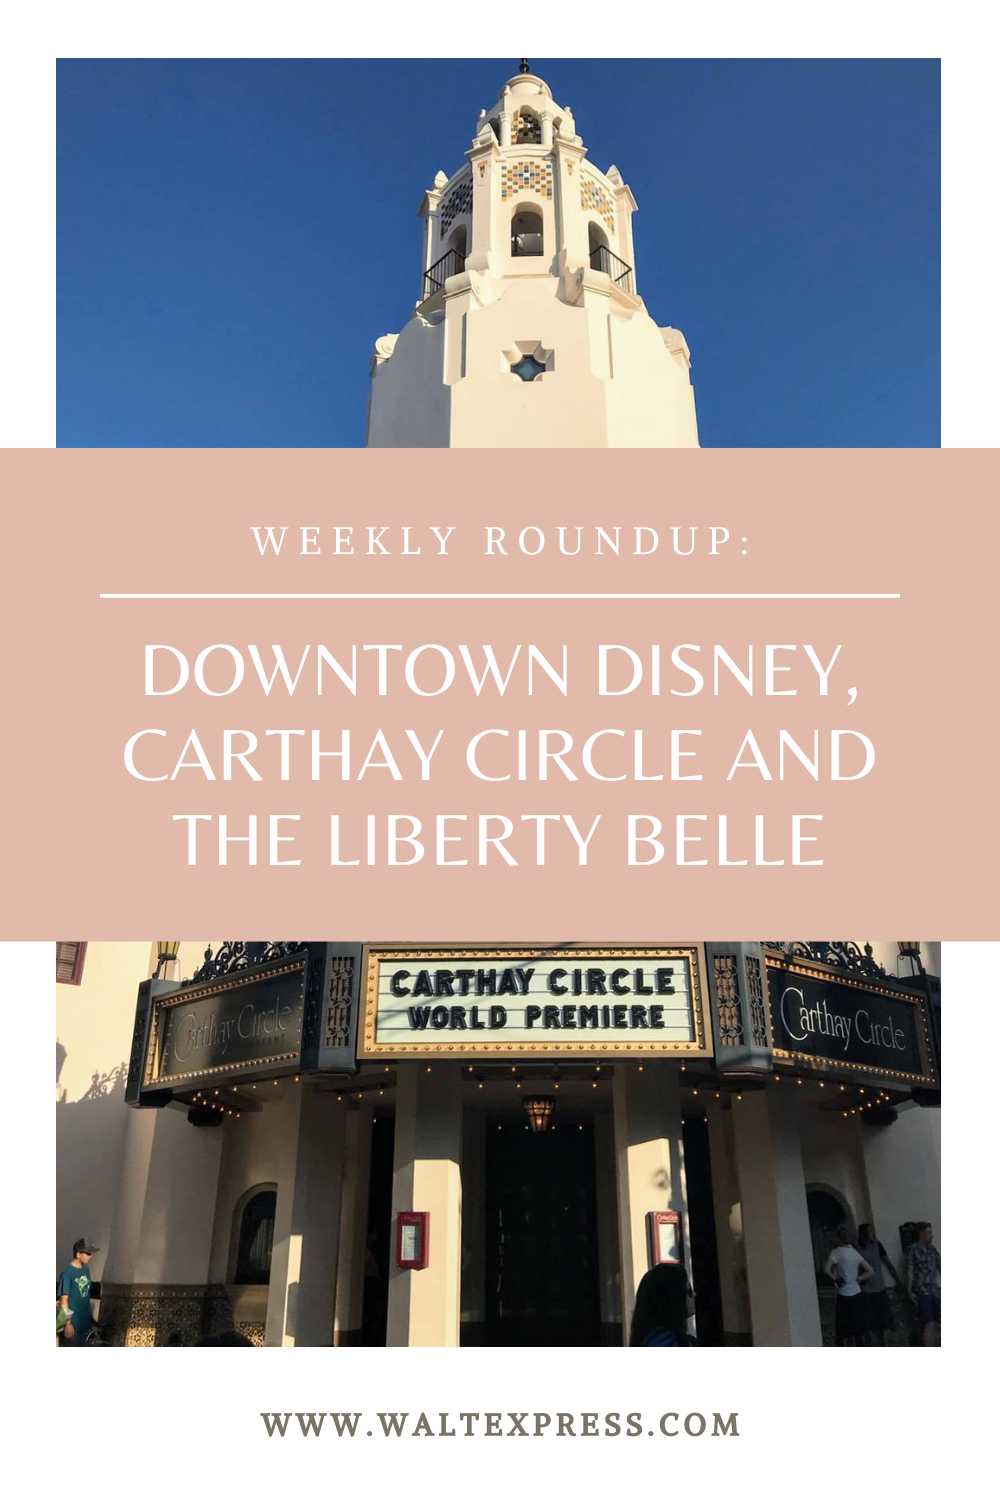 Weekly Roundup: Downtown Disney, Carthay Circle and the Liberty Belle